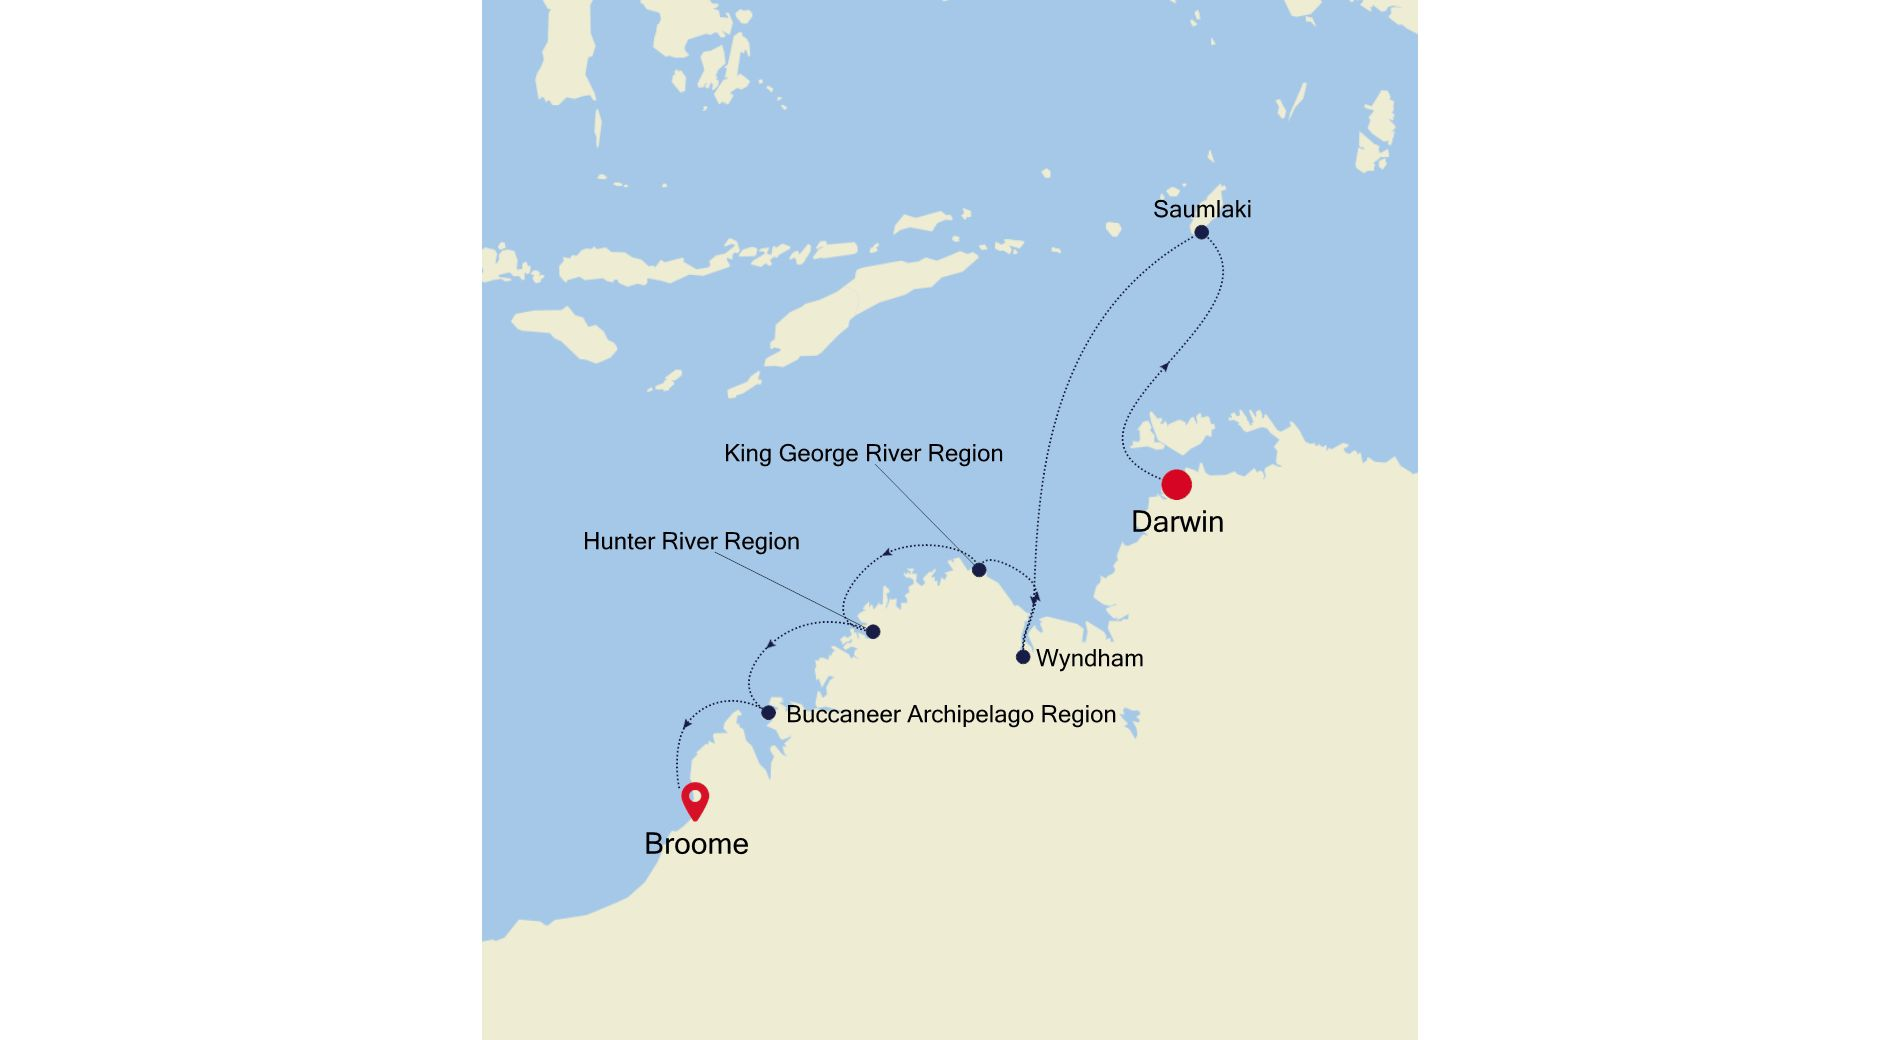 9909 - Darwin to Broome